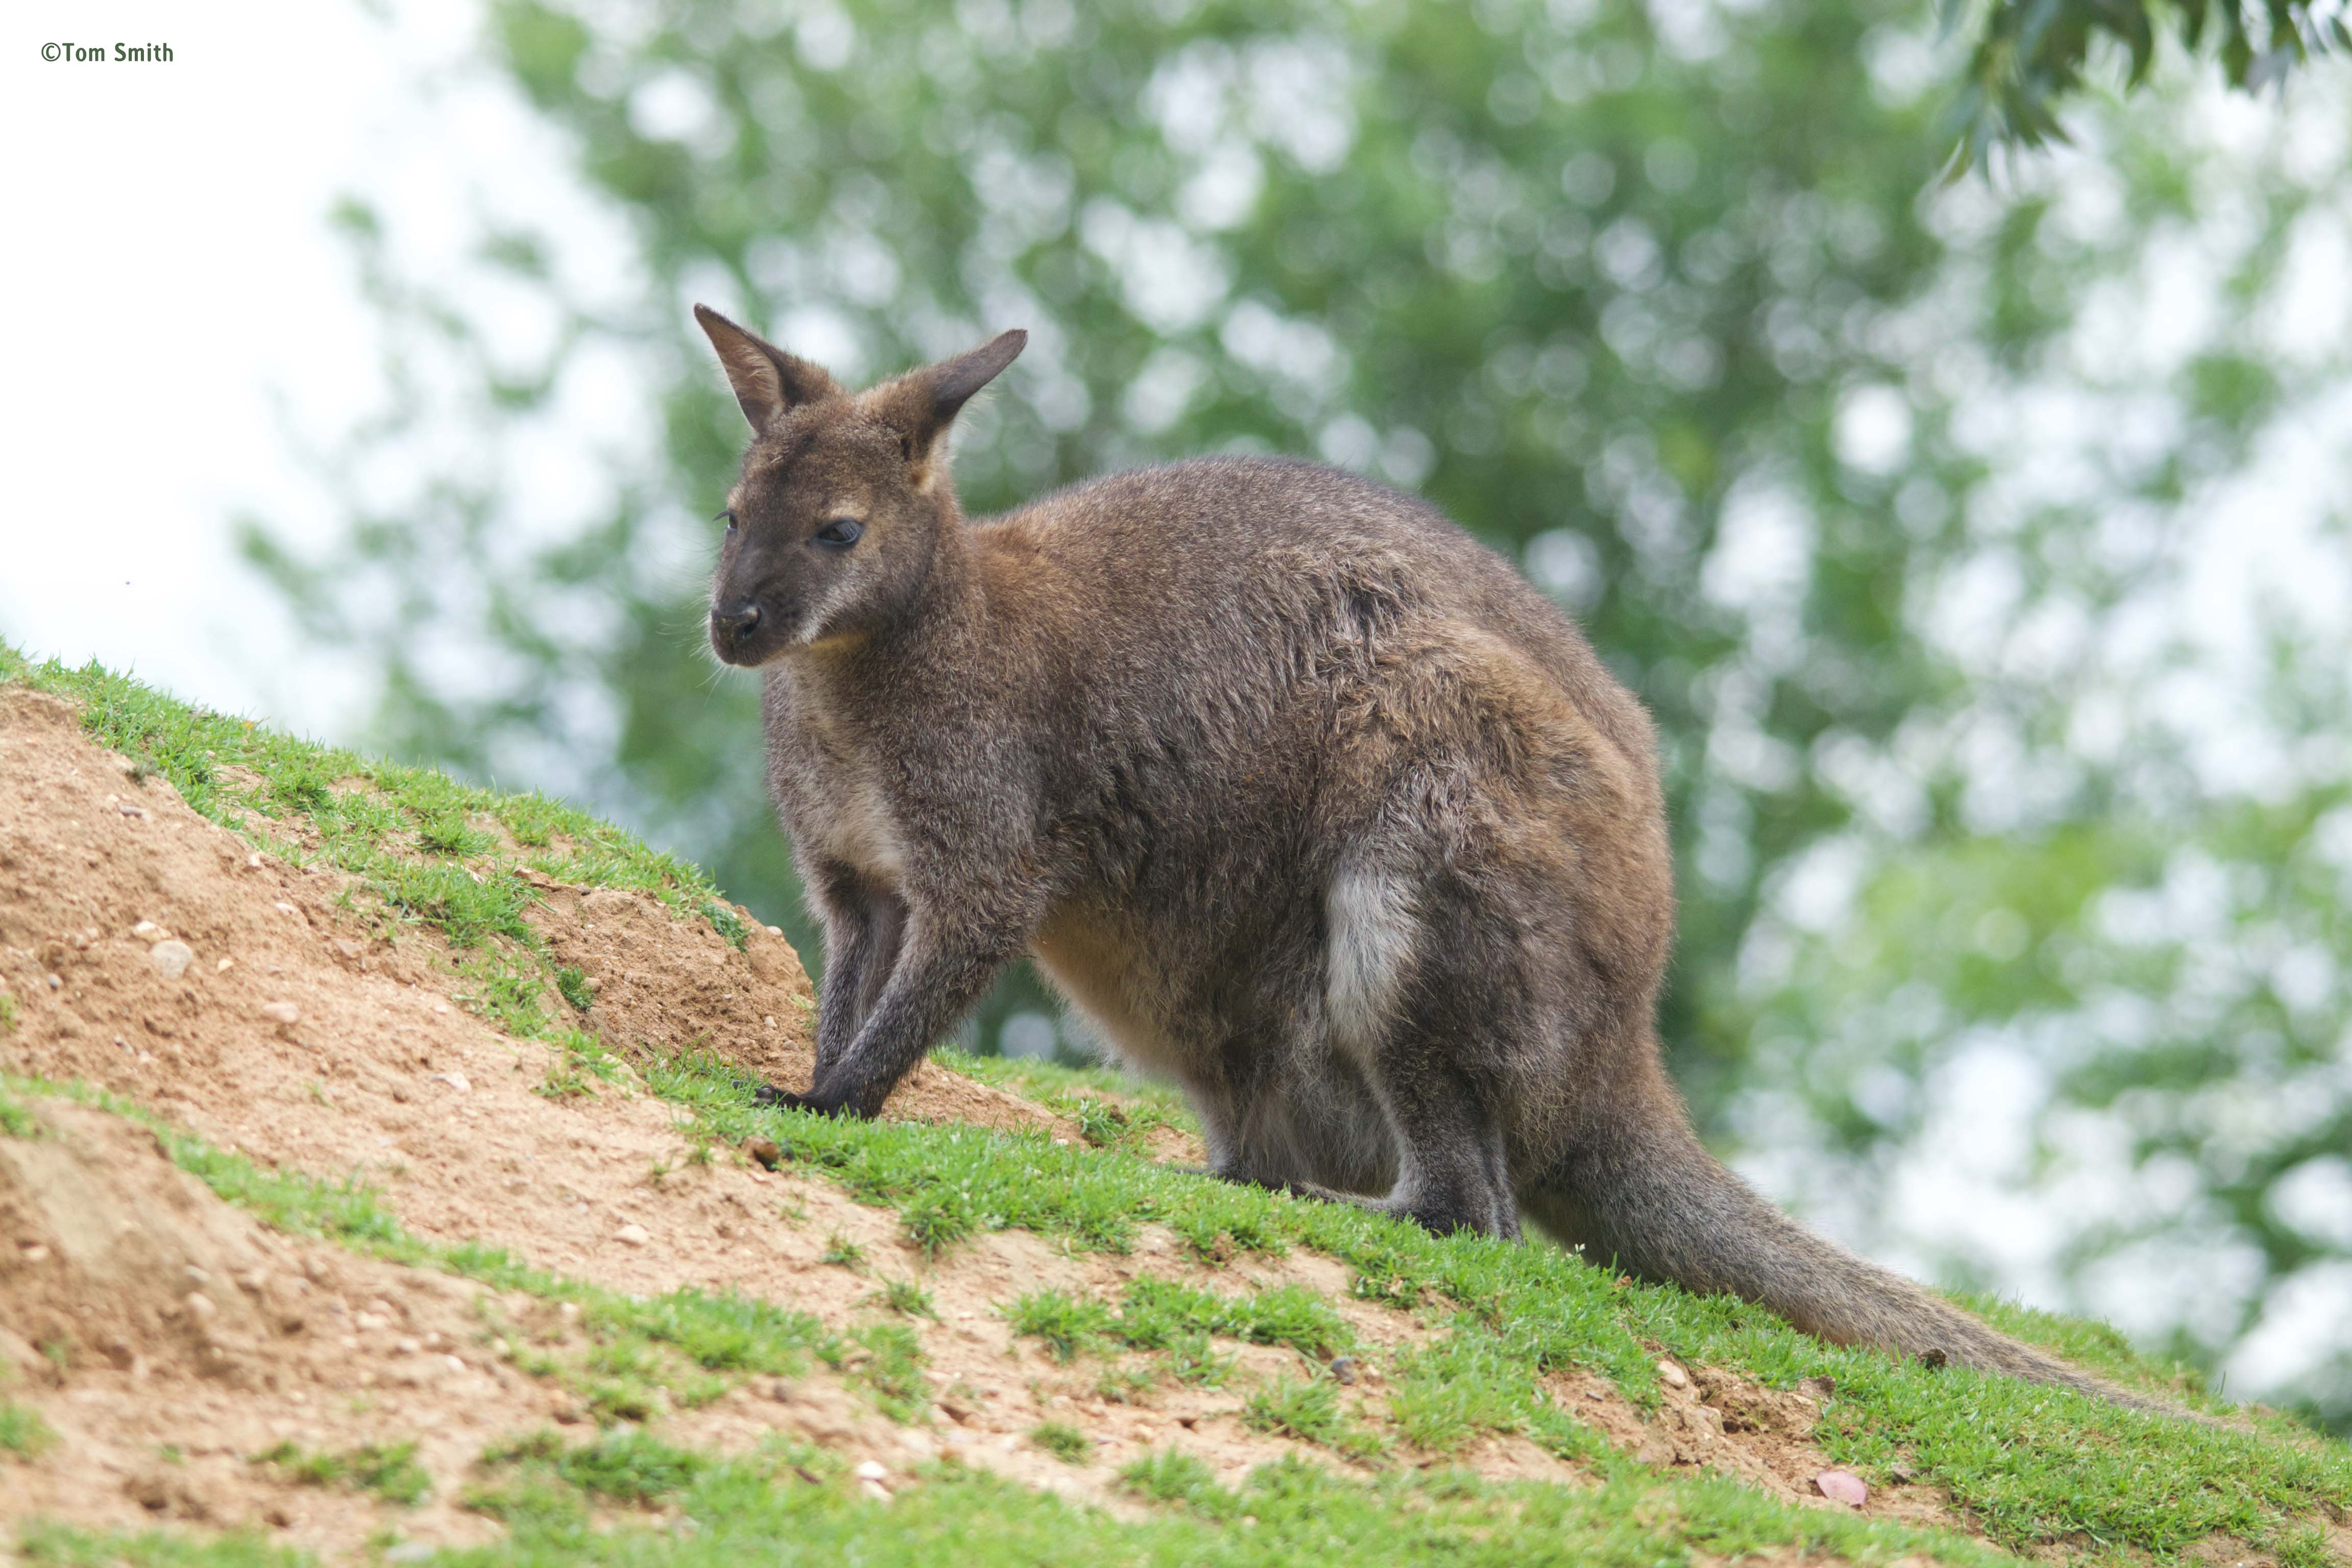 Our wallaby group has grown!